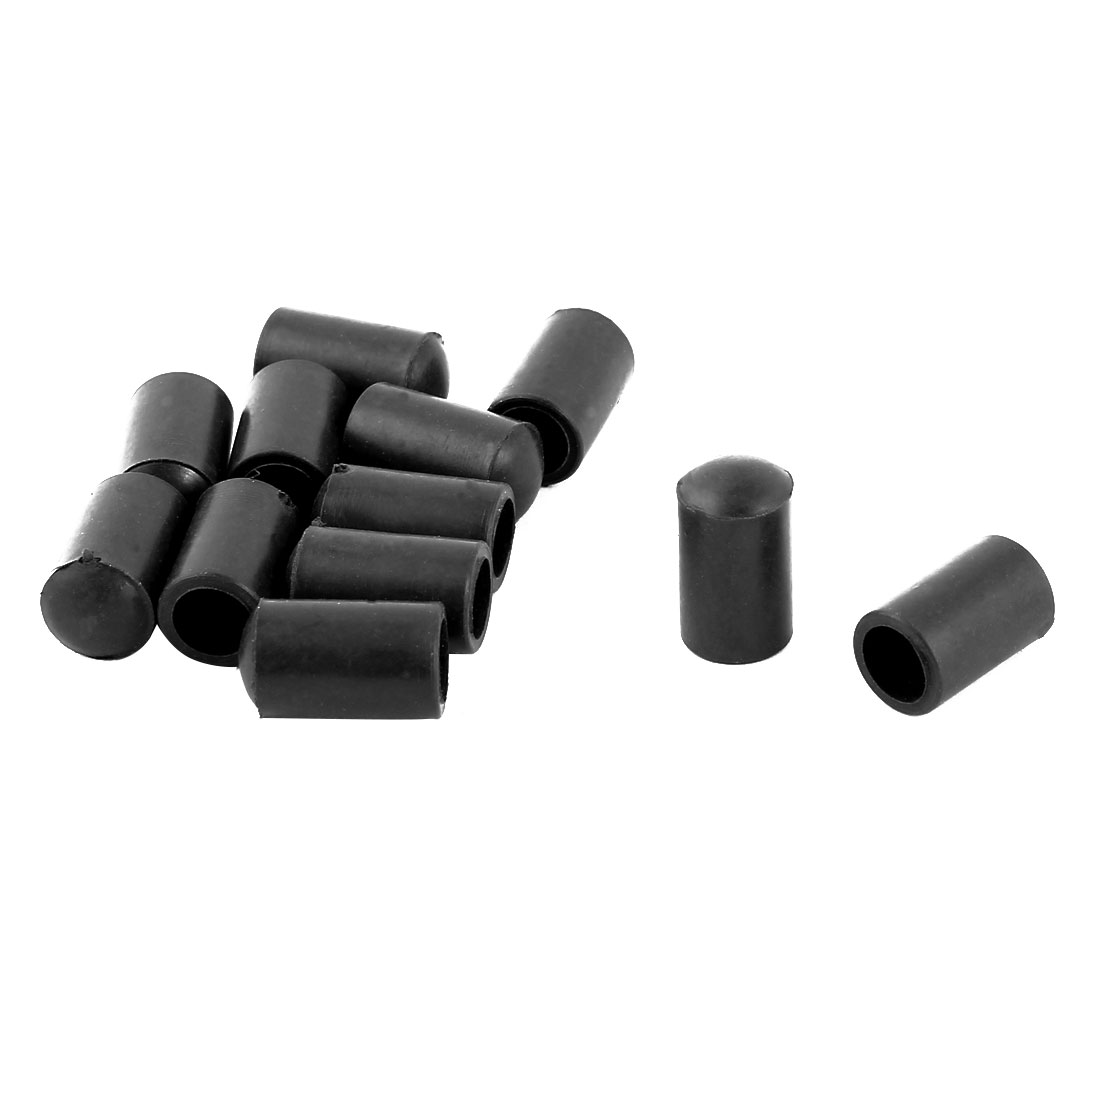 Office Rubber Table Chair Legs Protector Tube Insert Black Dia 6mm 12 Pcs